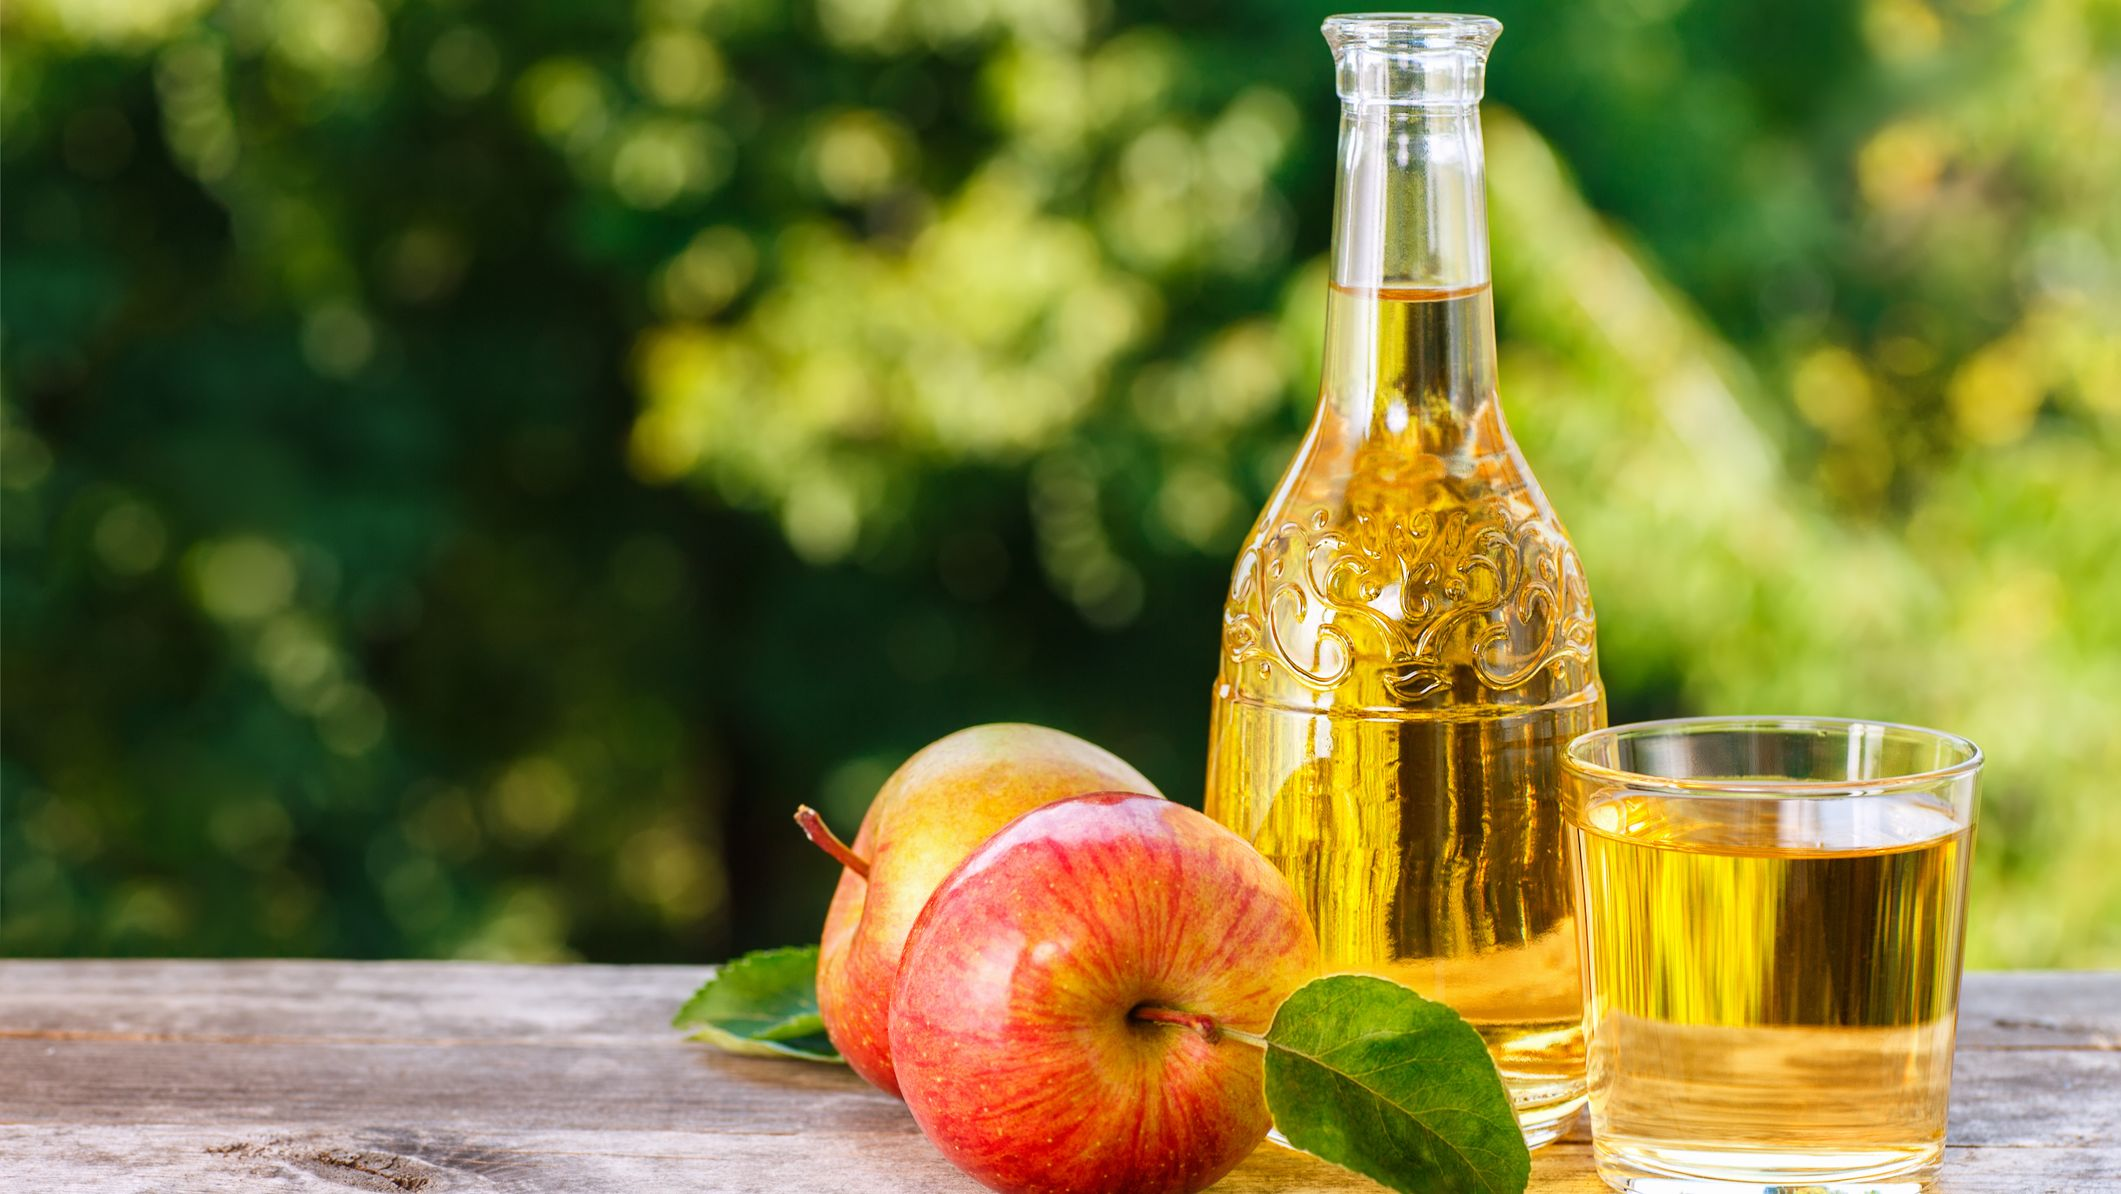 difference between cider and juice - HD2121×1194